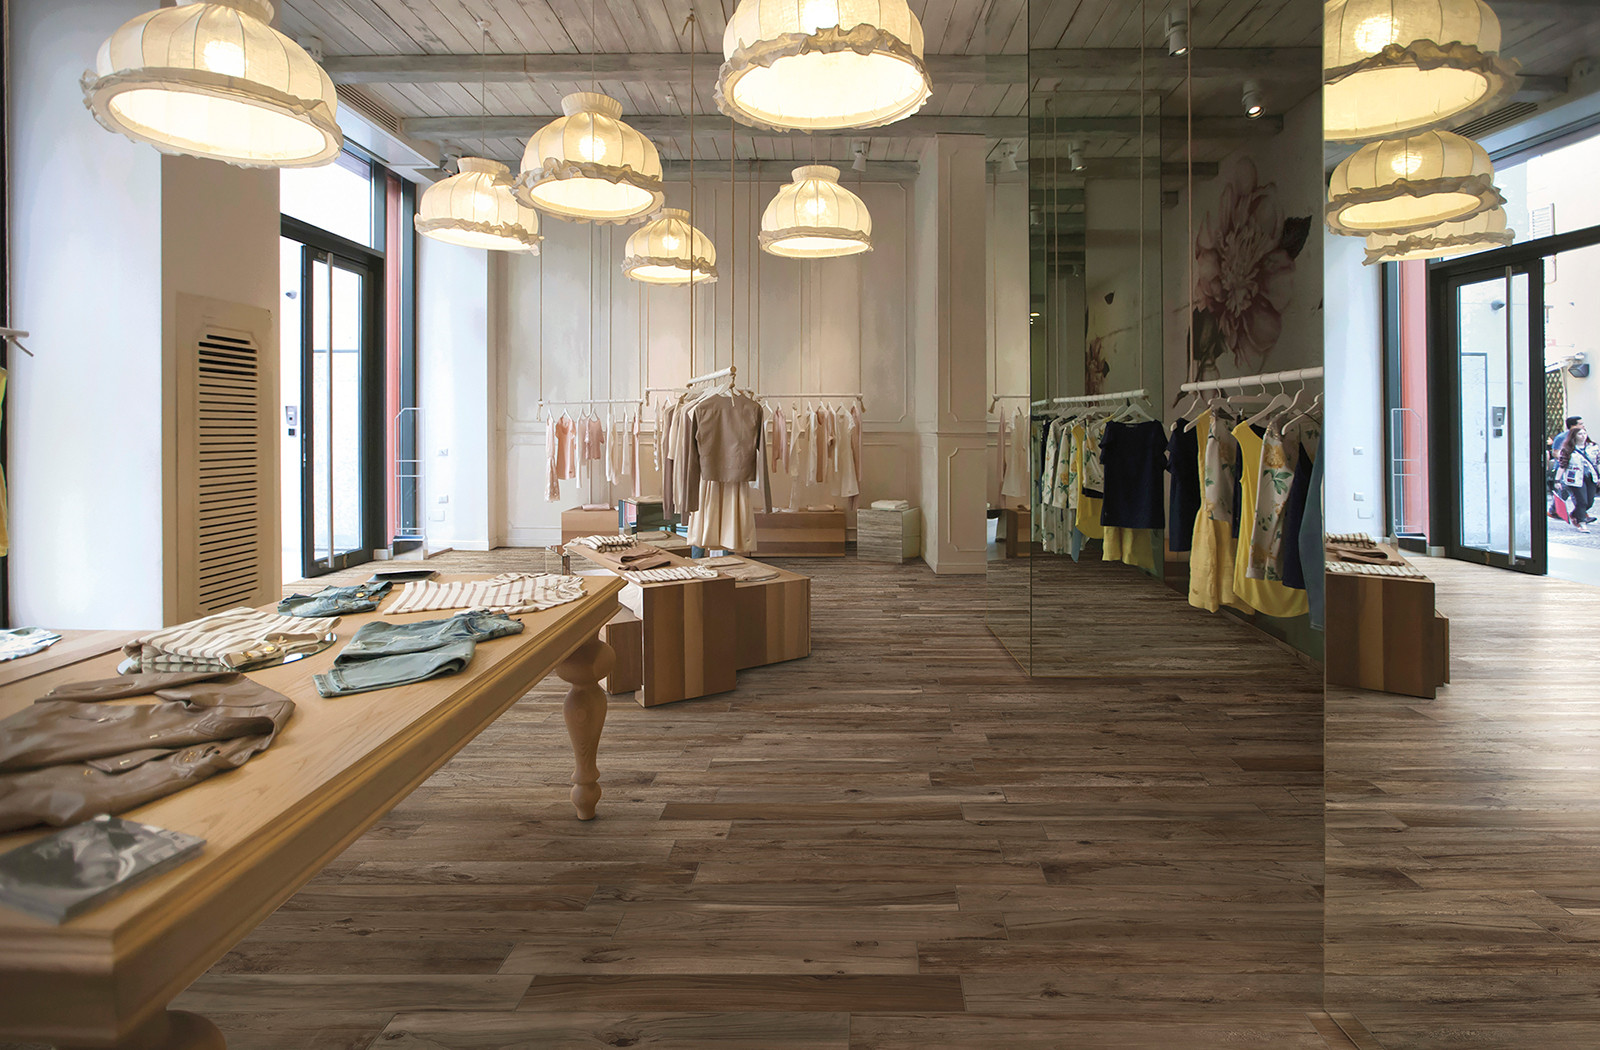 parqueteam hardwood flooring toronto on of marble series natural stones olympia tile with regard to rd living noce retail store